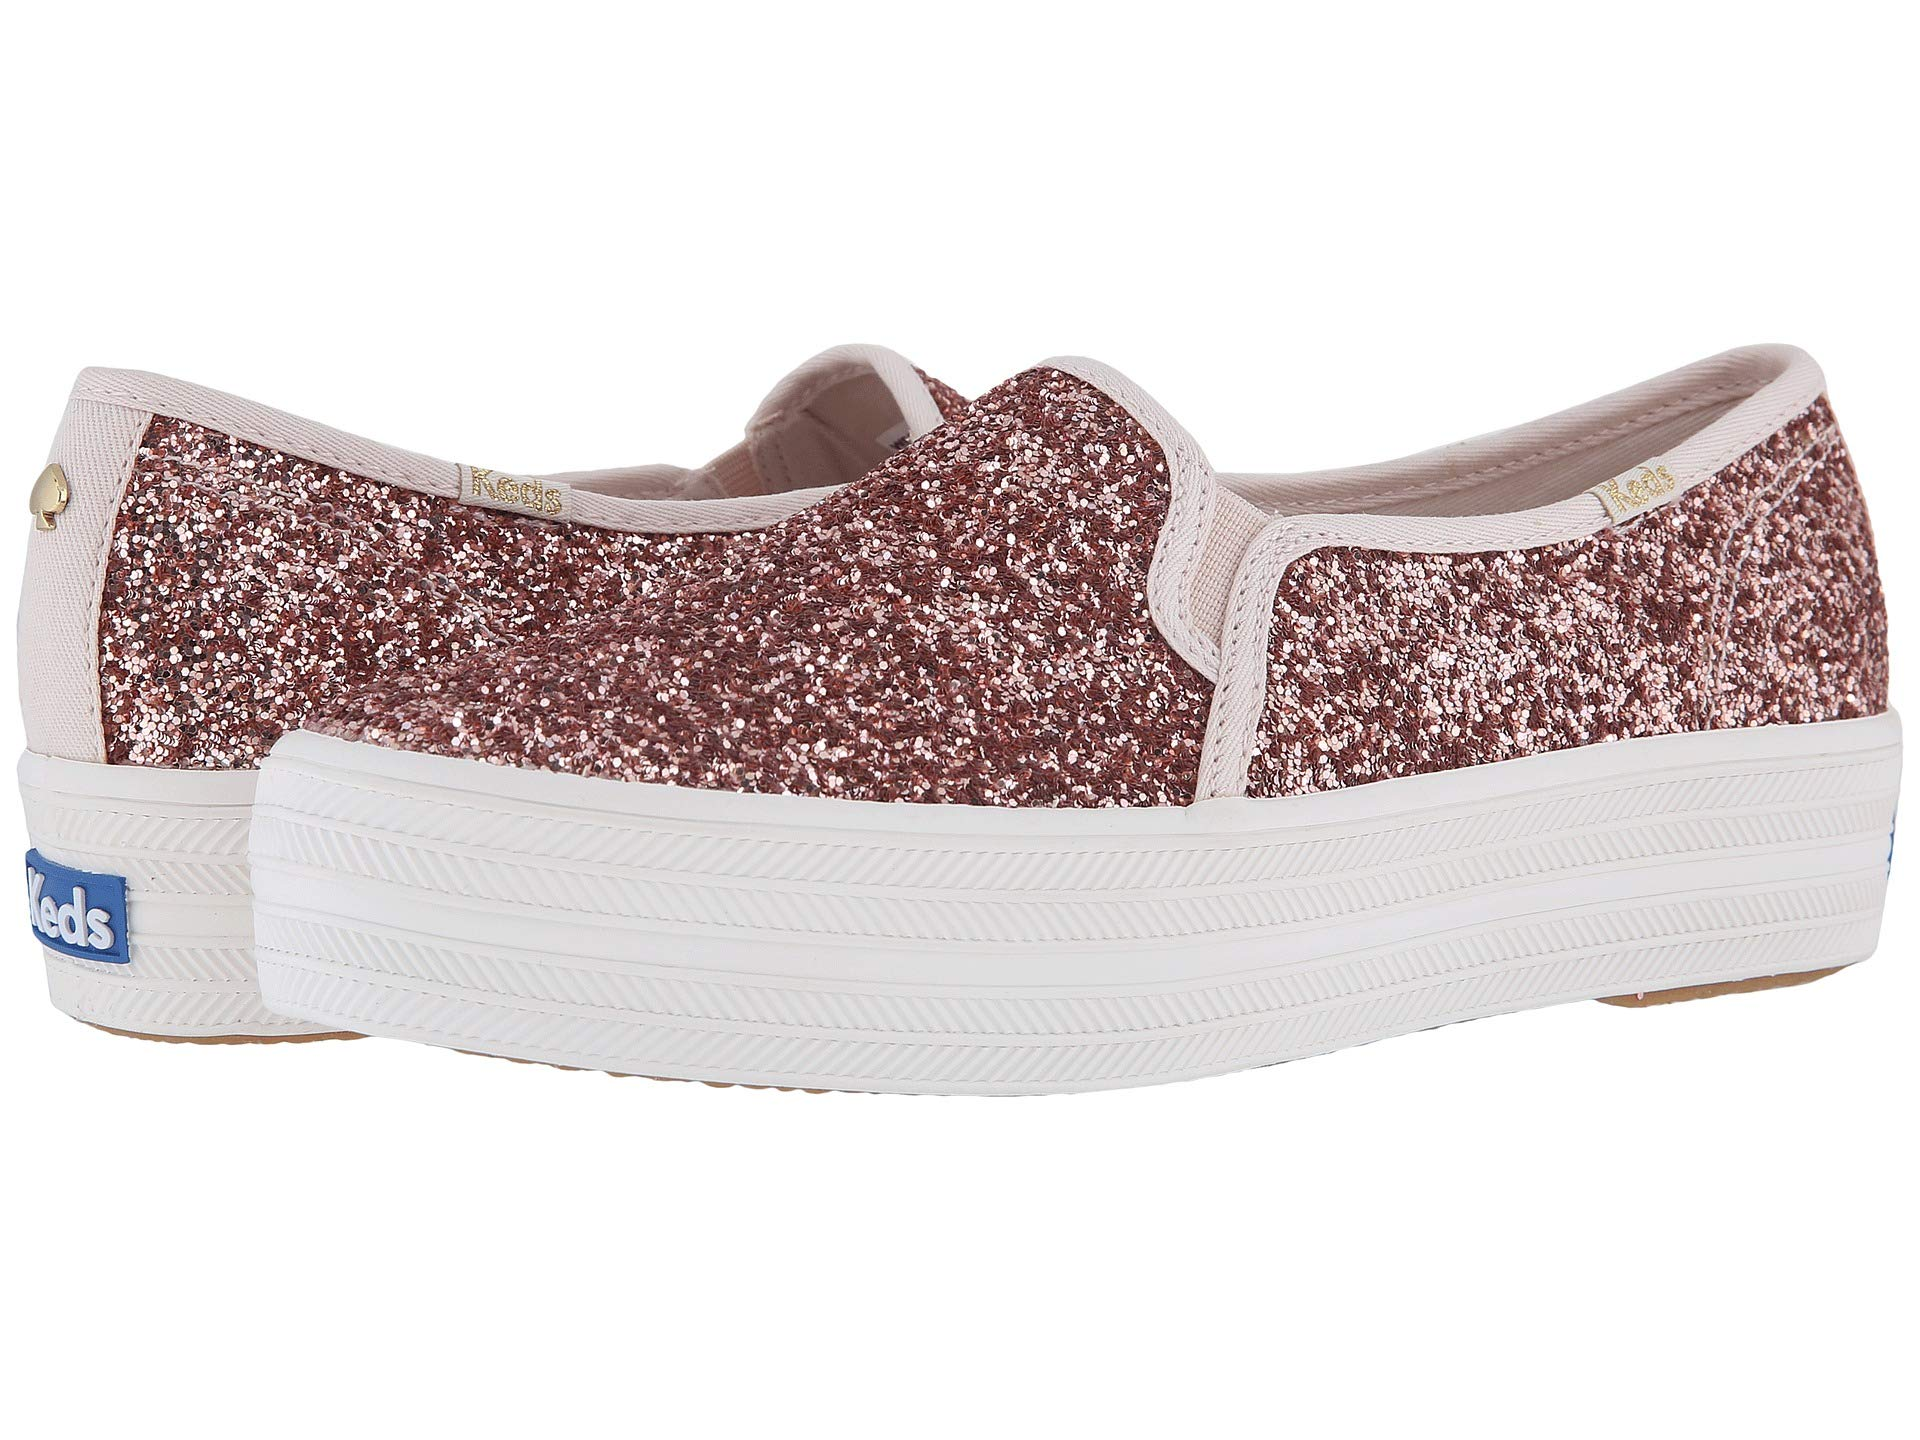 6a7dee1f3105 Keds x kate spade new york Triple Decker KS Glitter at Luxury.Zappos.com